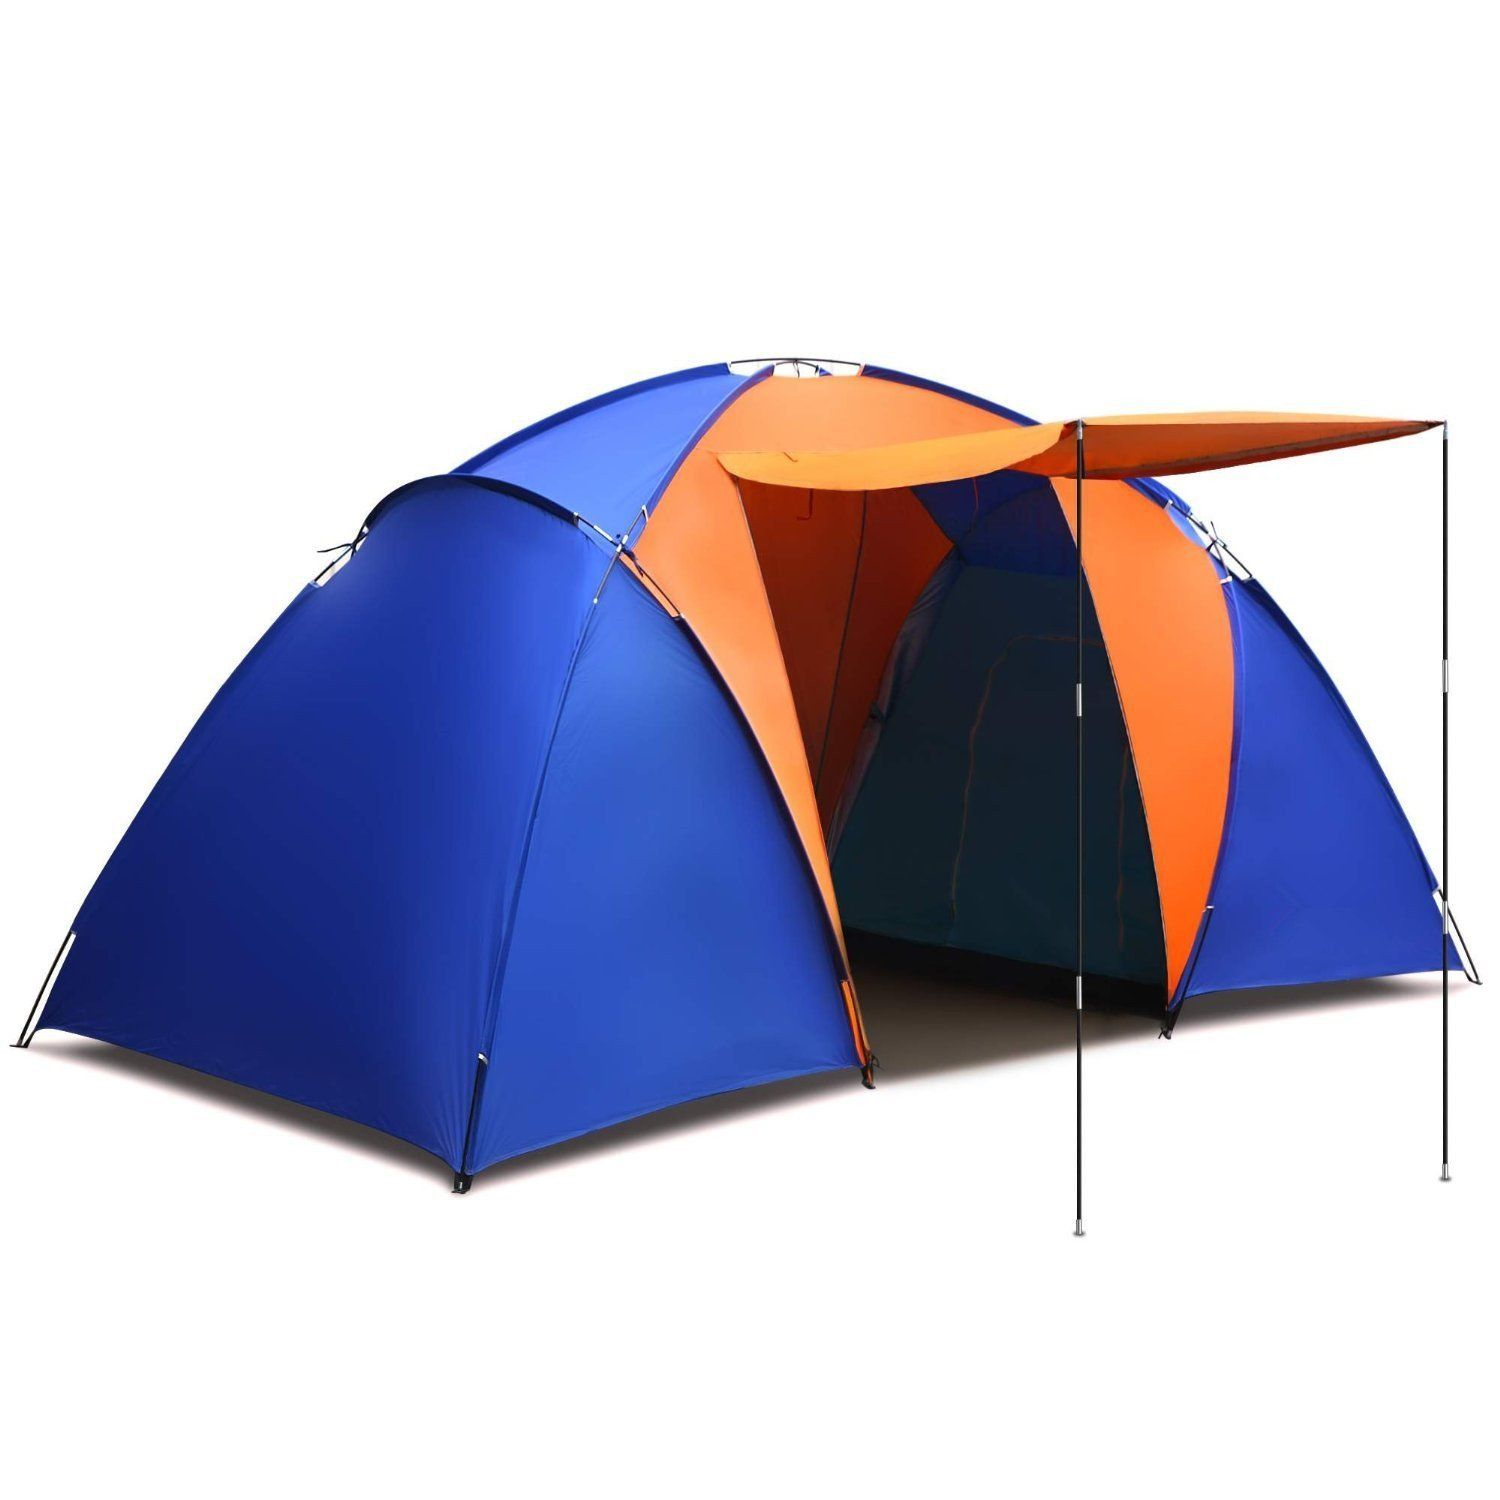 Generic Splicing Color 2 Room 6 Person Waterproof Outdoor C&ing Tent Hiking C&ing Portable Family Tent  sc 1 st  Pinterest & Generic Splicing Color 2 Room 6 Person Waterproof Outdoor Camping ...